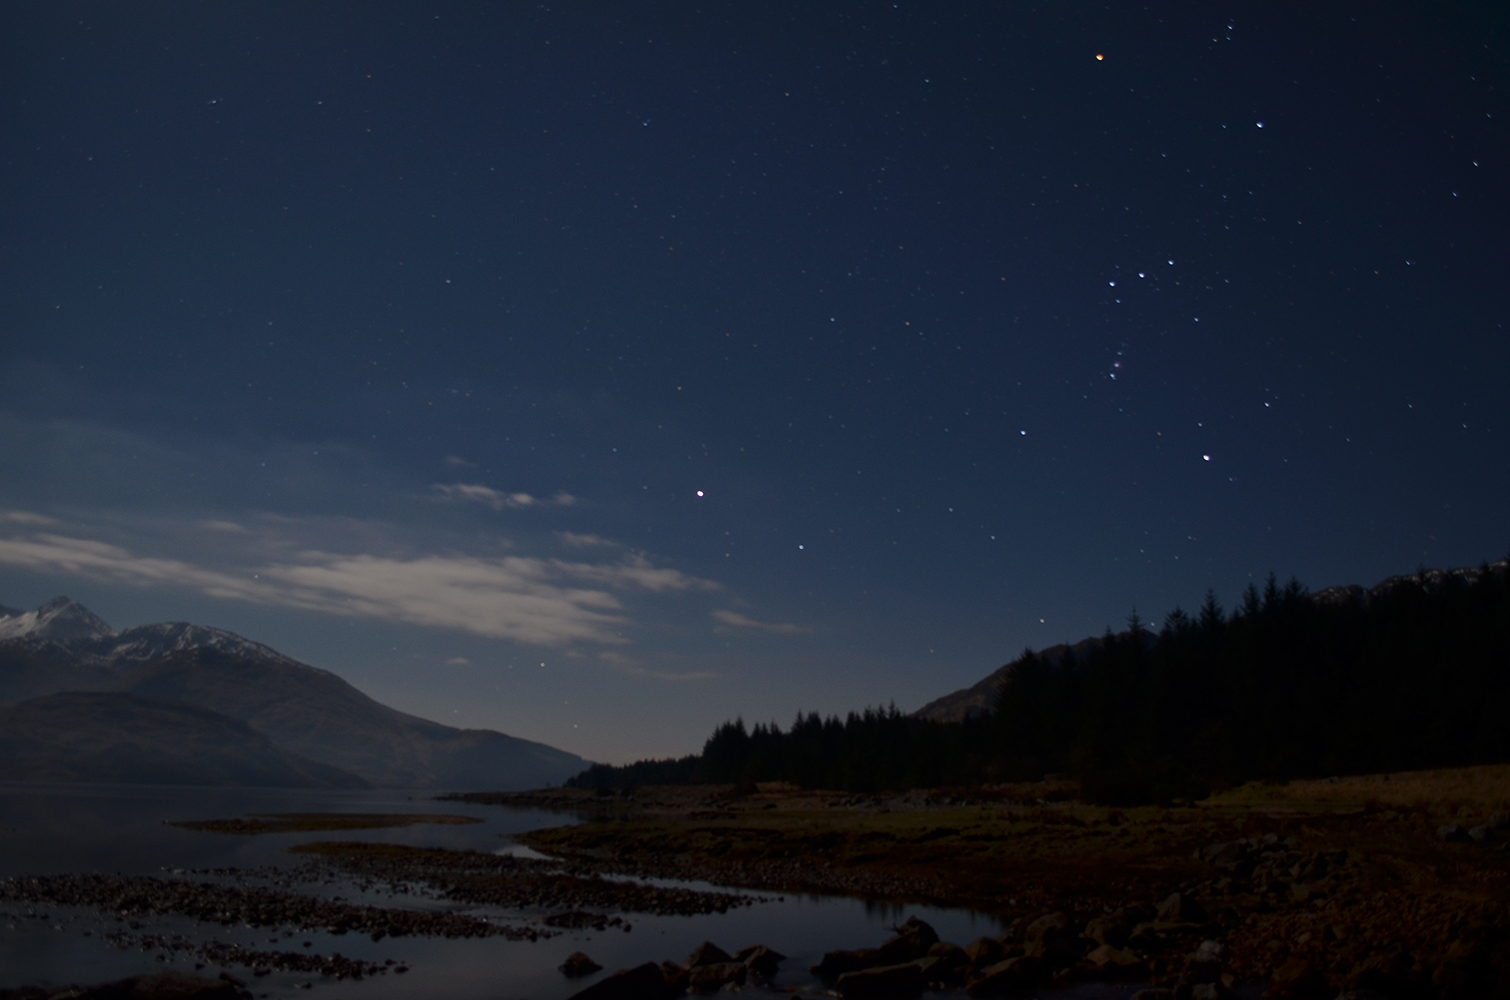 orion over loch etive